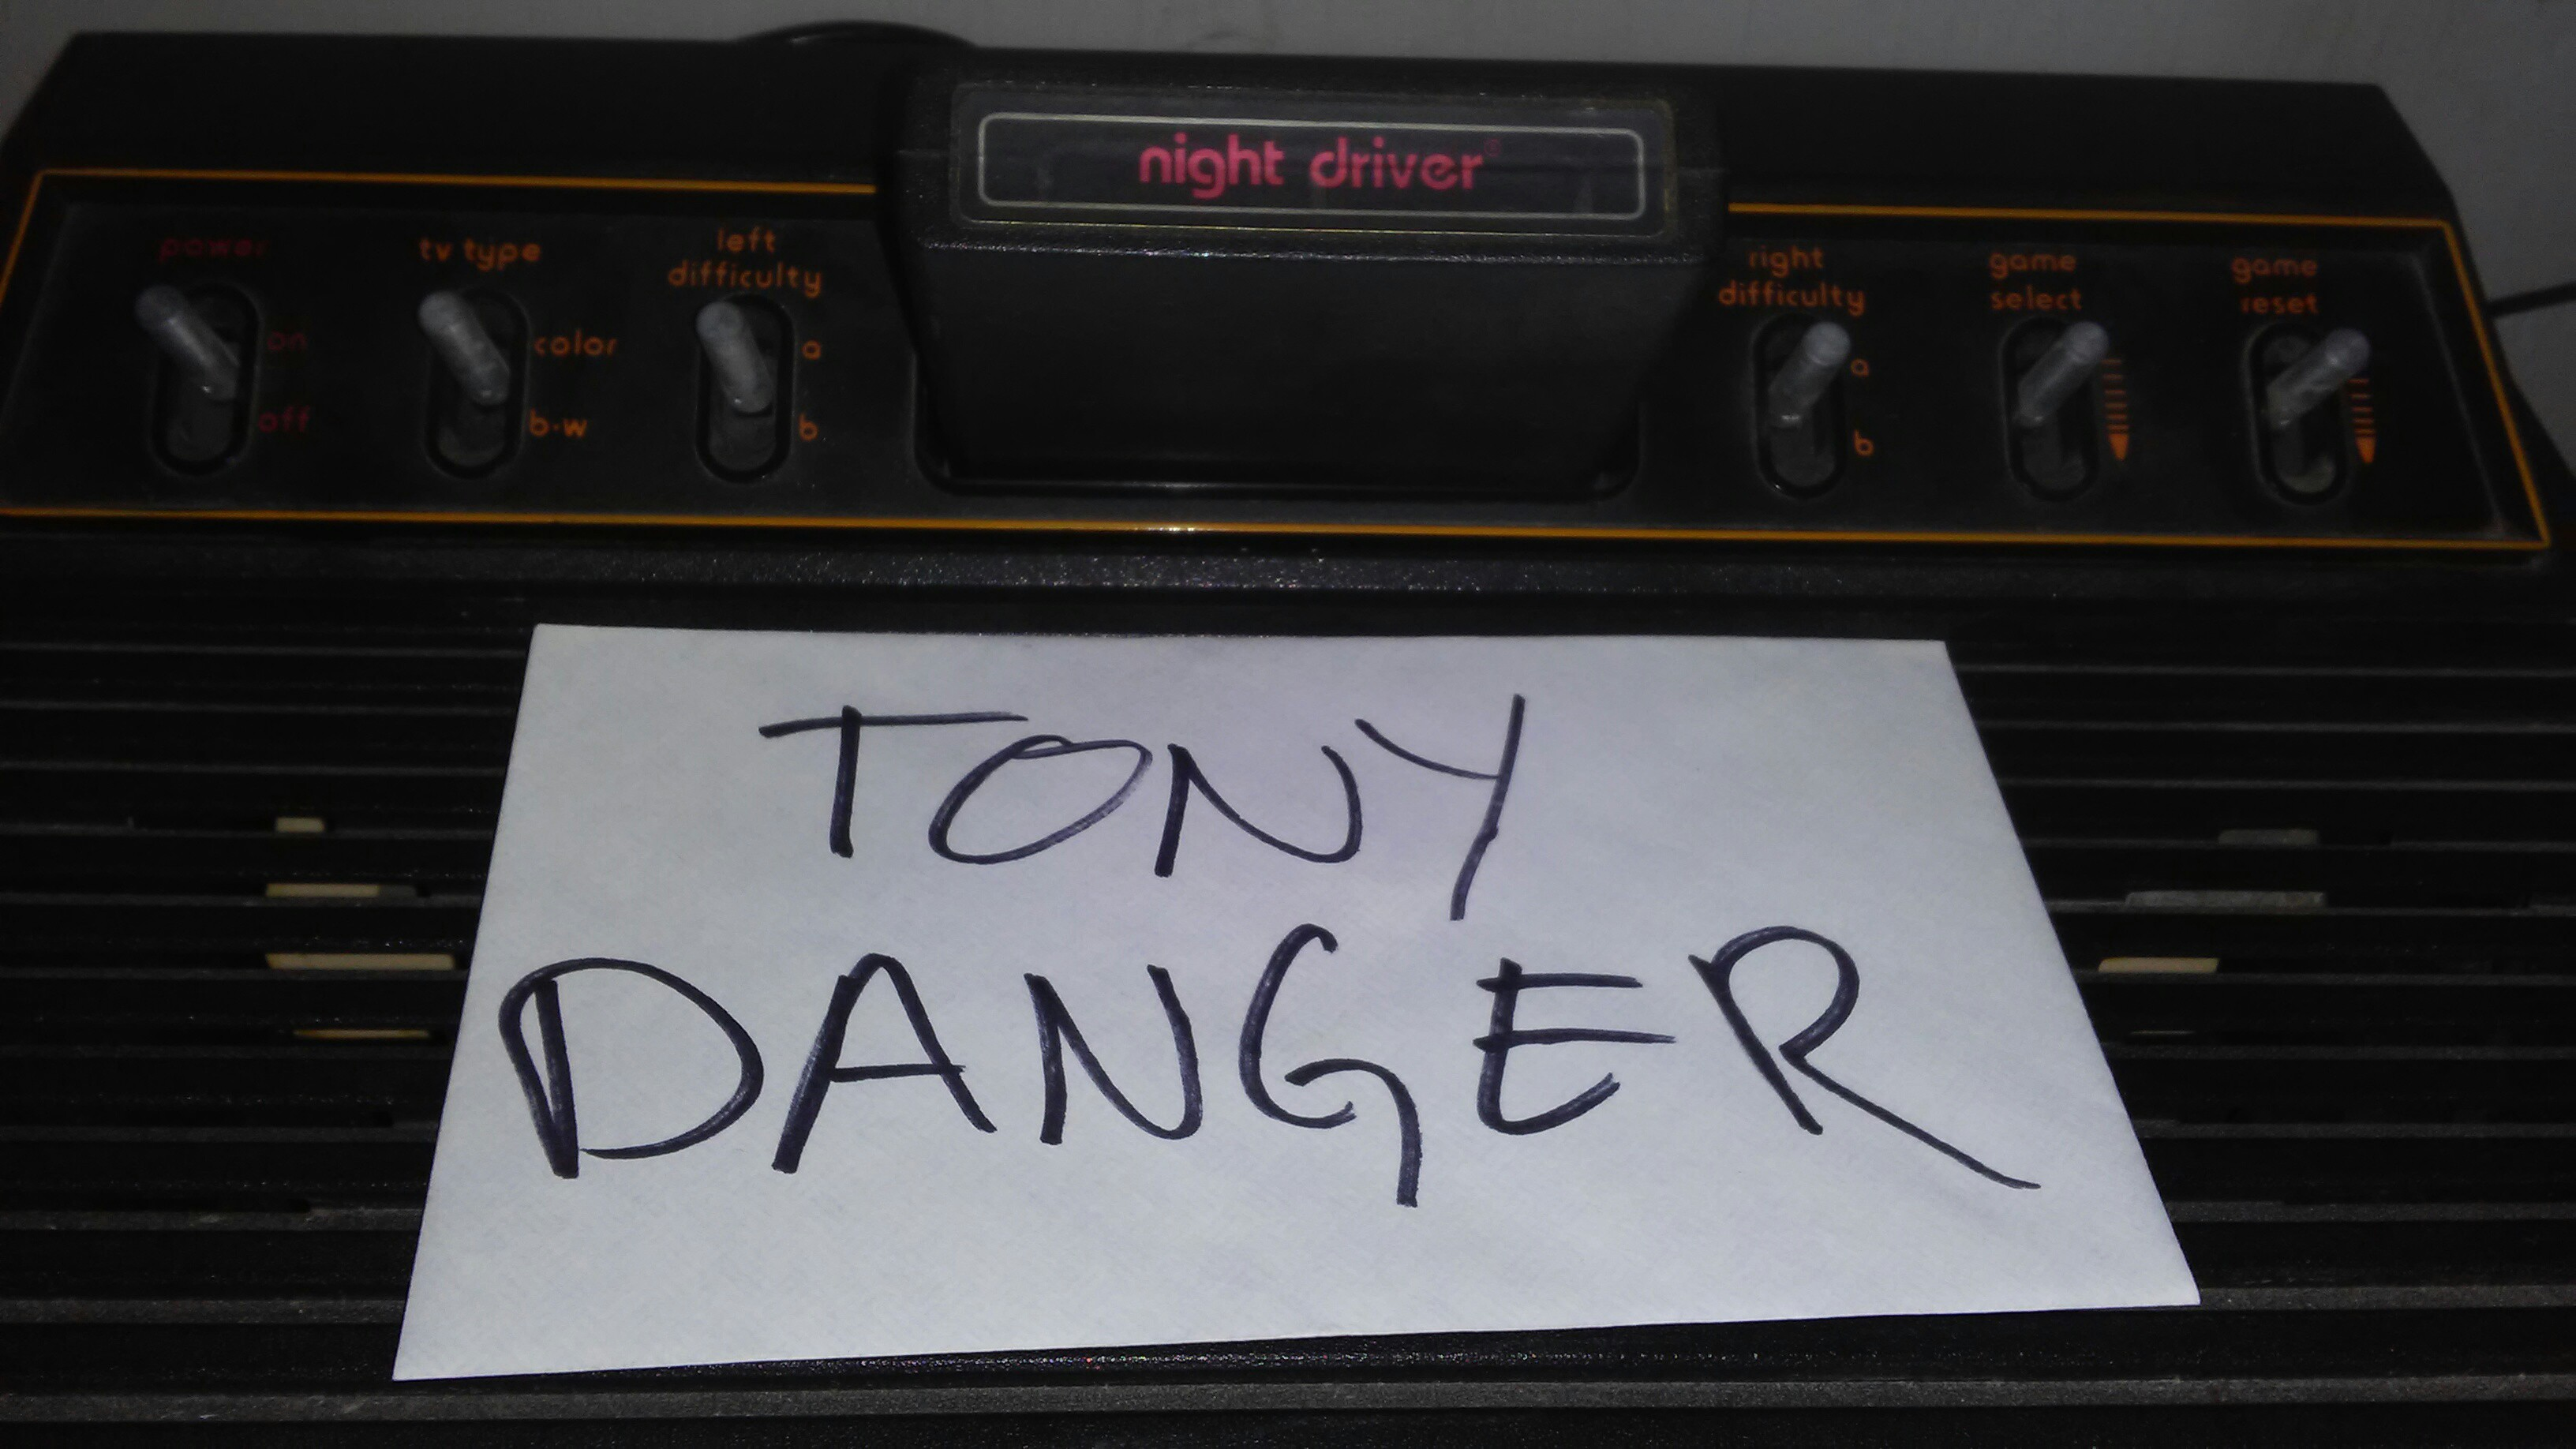 TonyDanger: Night Driver (Atari 2600 Expert/A) 71 points on 2017-01-04 18:34:17